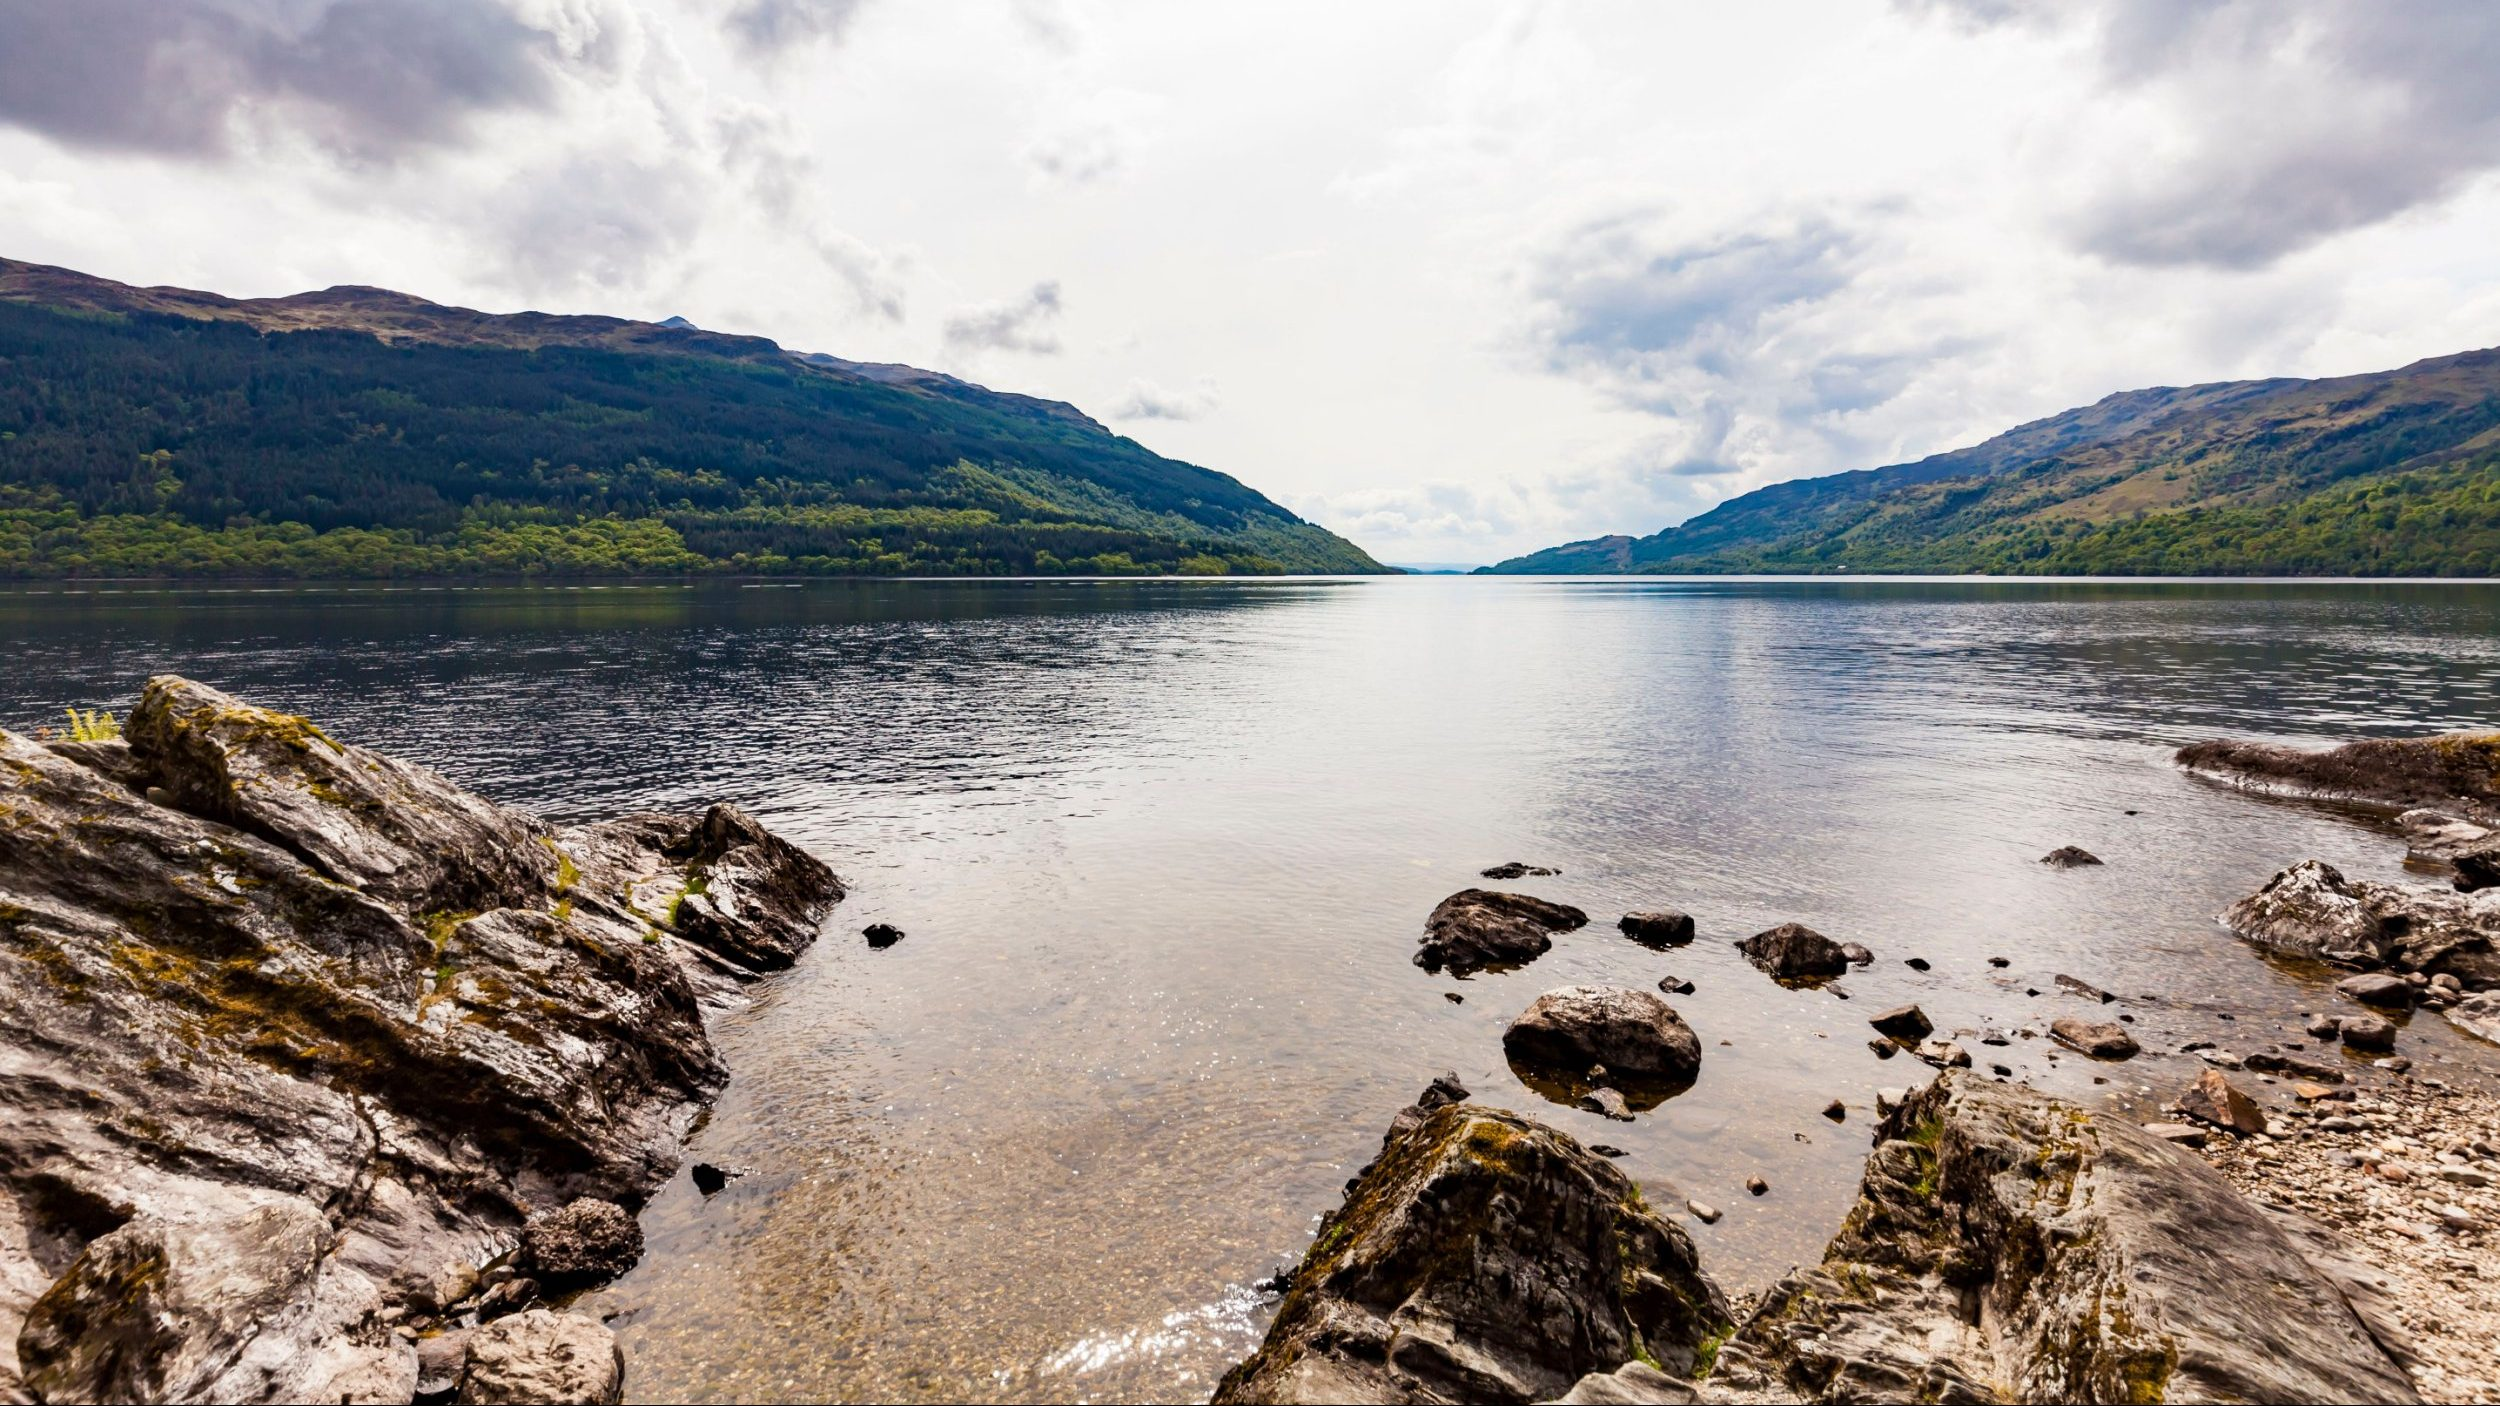 Mandatory Credit: Photo by REX/Shutterstock (9651045a) United Kingdom, Scotland, Luss, Loch Lomond and The Trossachs National Park, Loch Lomond VARIOUS